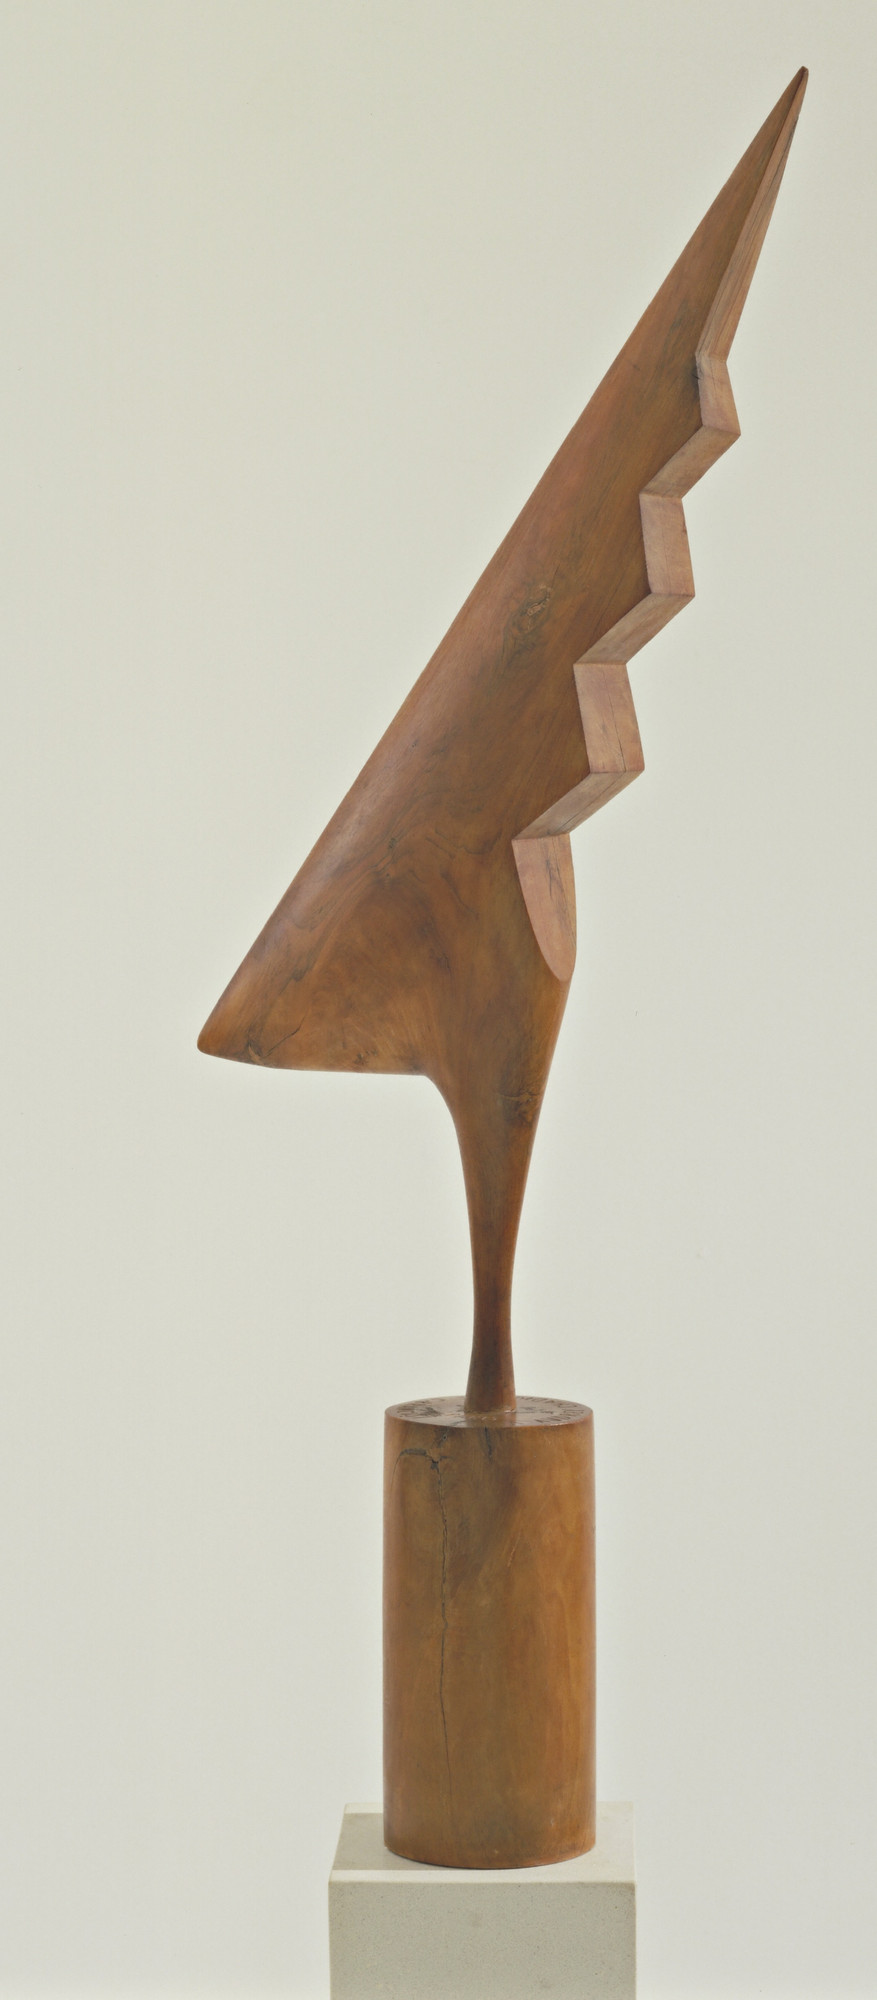 Constantin Brancusi. The Cock. Paris 1924